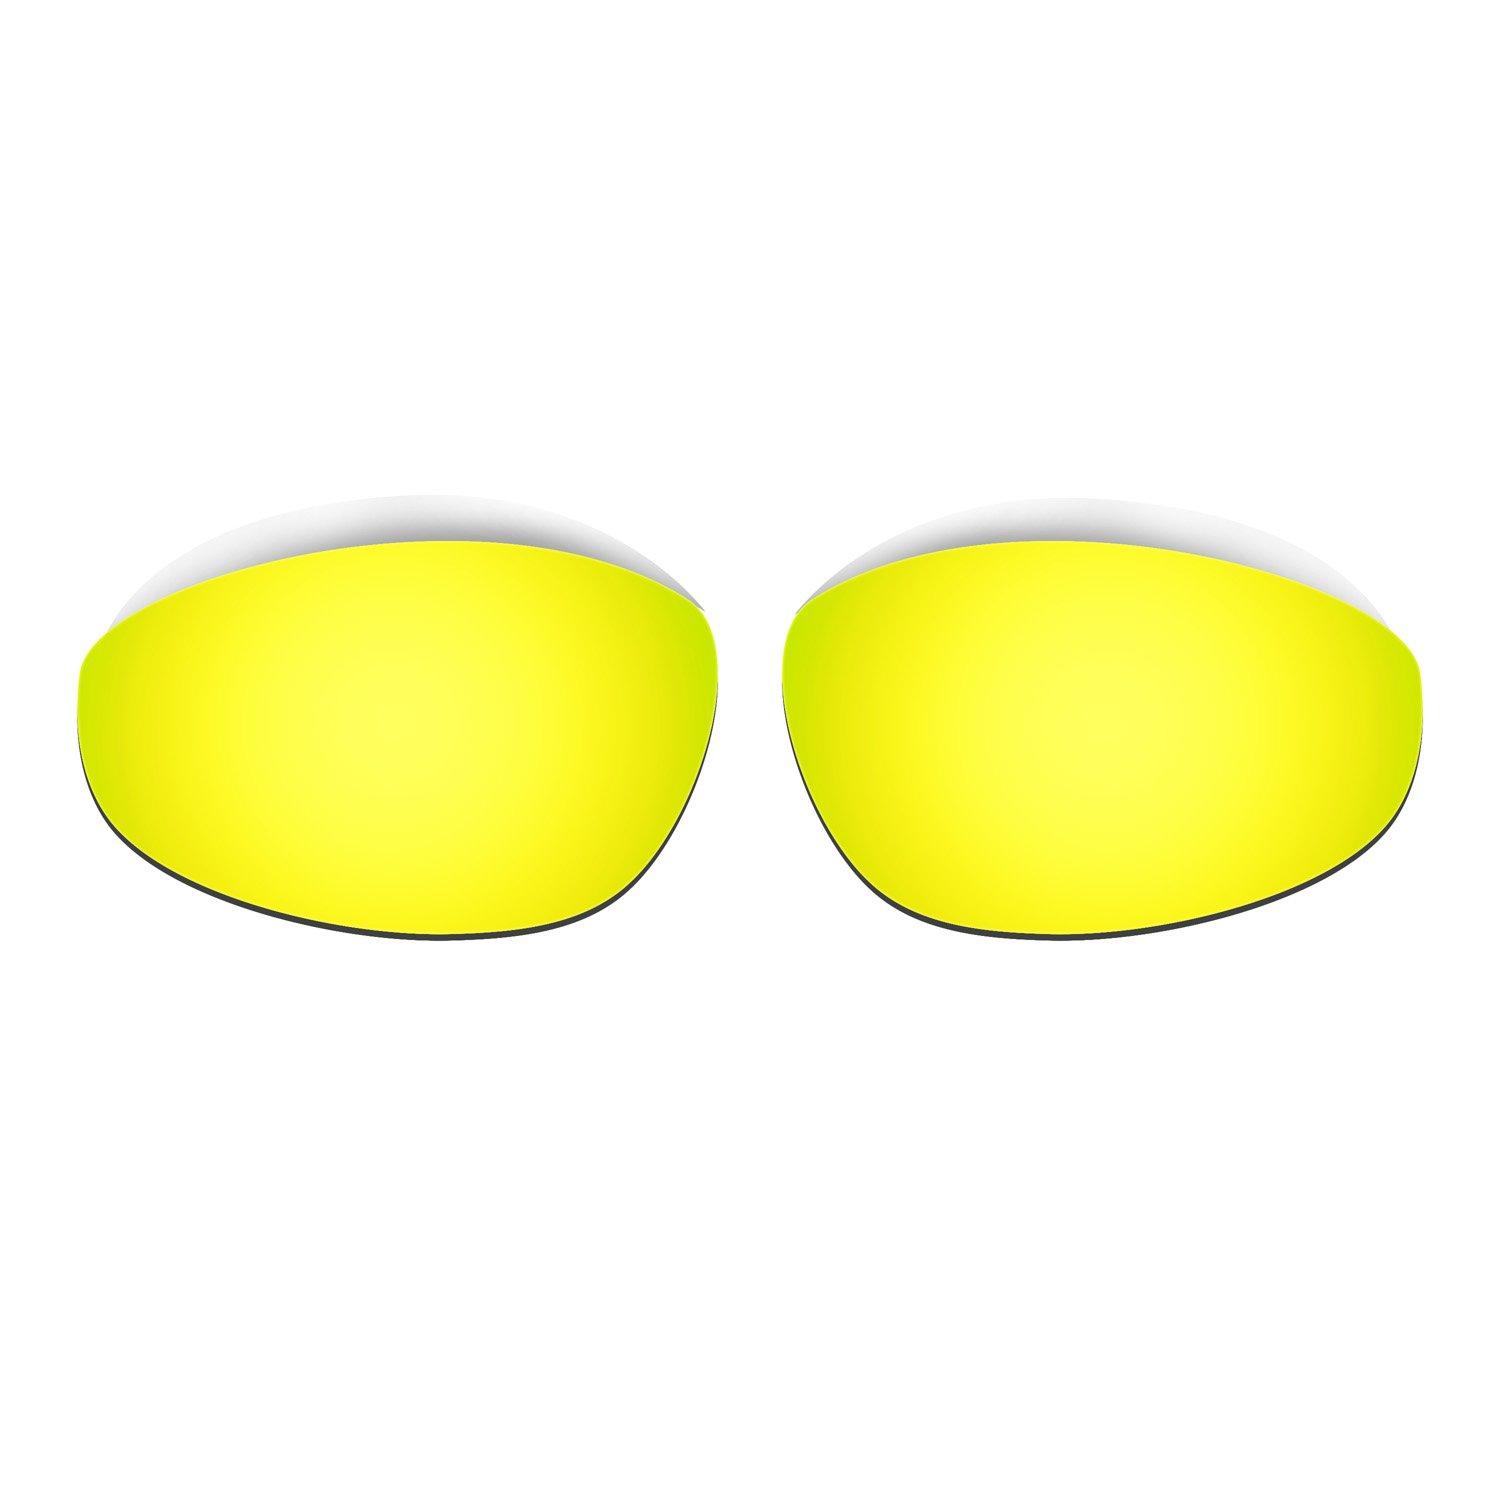 b6bf5ea83f Amazon.com  Hkuco Mens Replacement Lenses For Oakley Straight Jacket (1999)  Sunglasses 24K Gold Polarized  Clothing